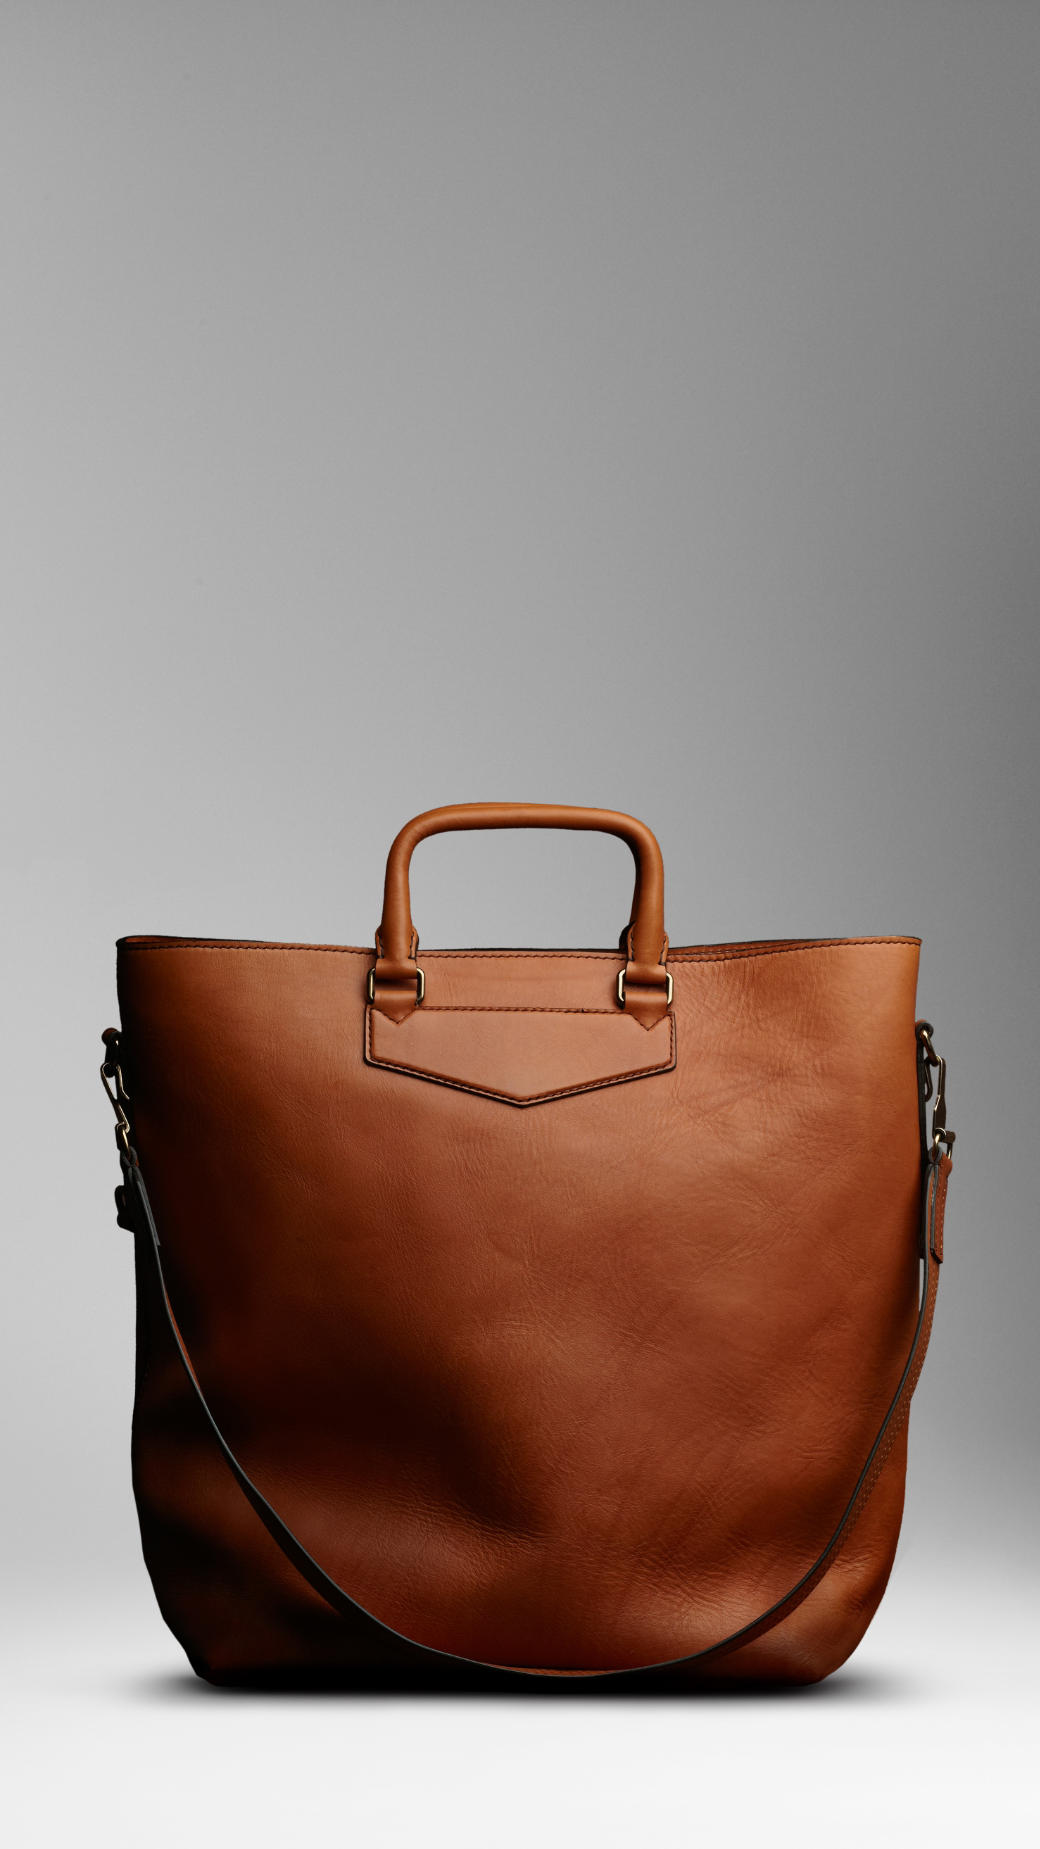 57a37db1b8 Burberry Large Washed Leather Tote in Brown for Men - Lyst